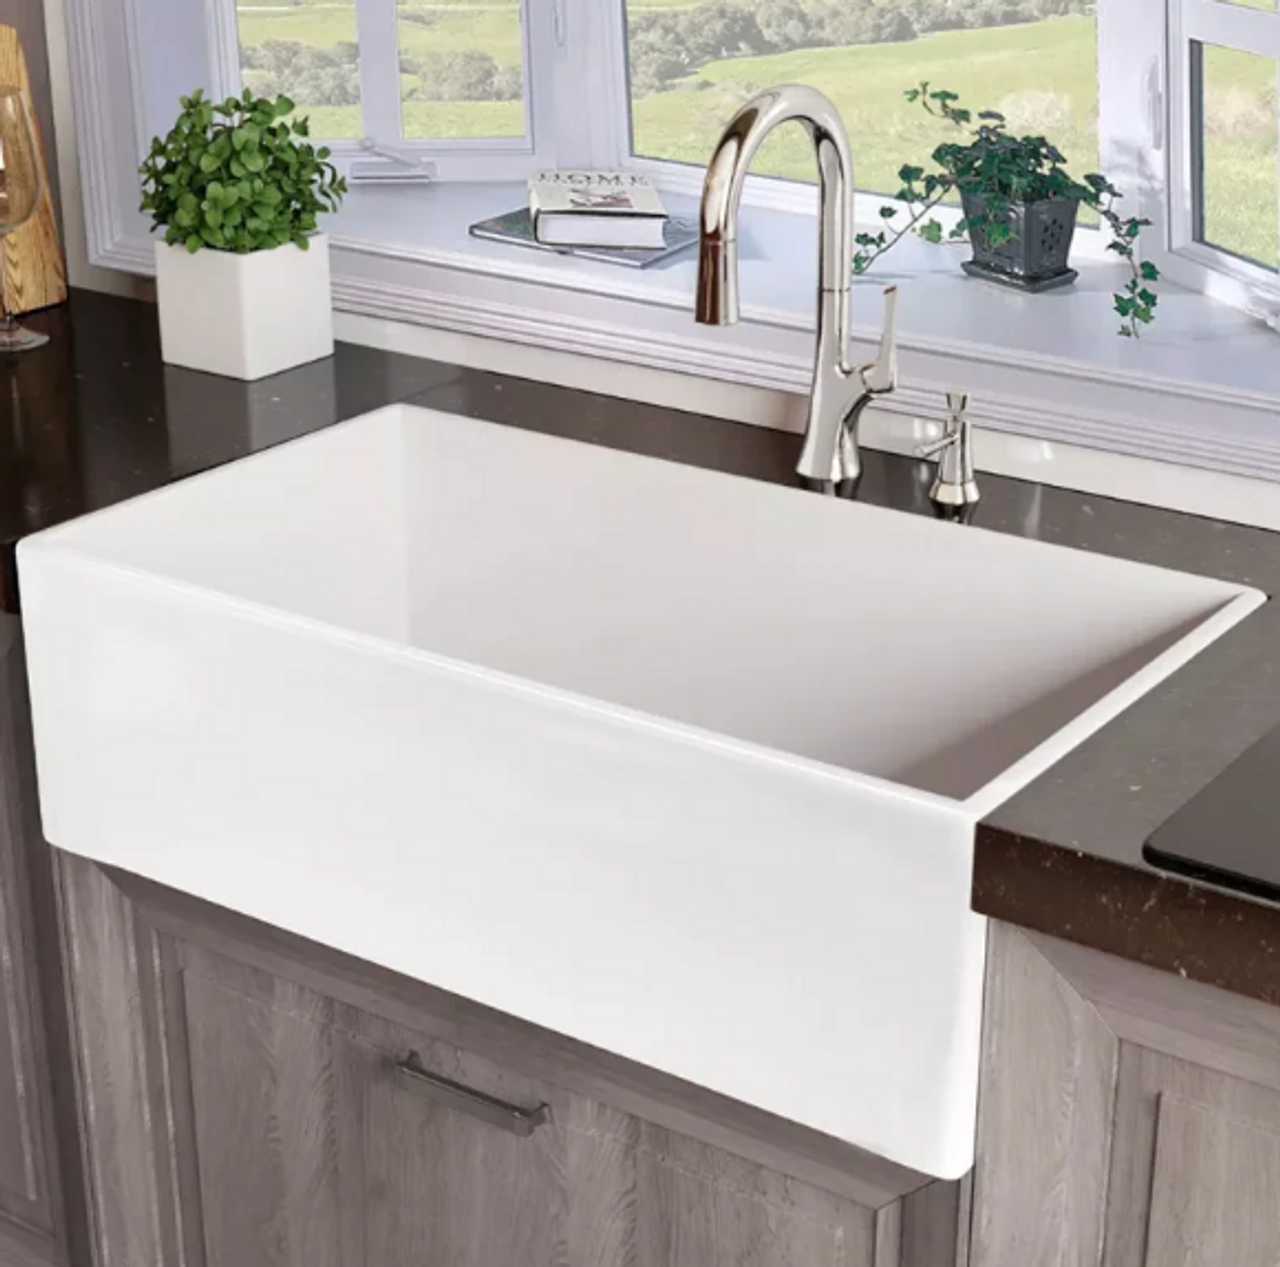 33 Single Bowl Farmhouse Fireclay Kitchen Sink Cabinet Now